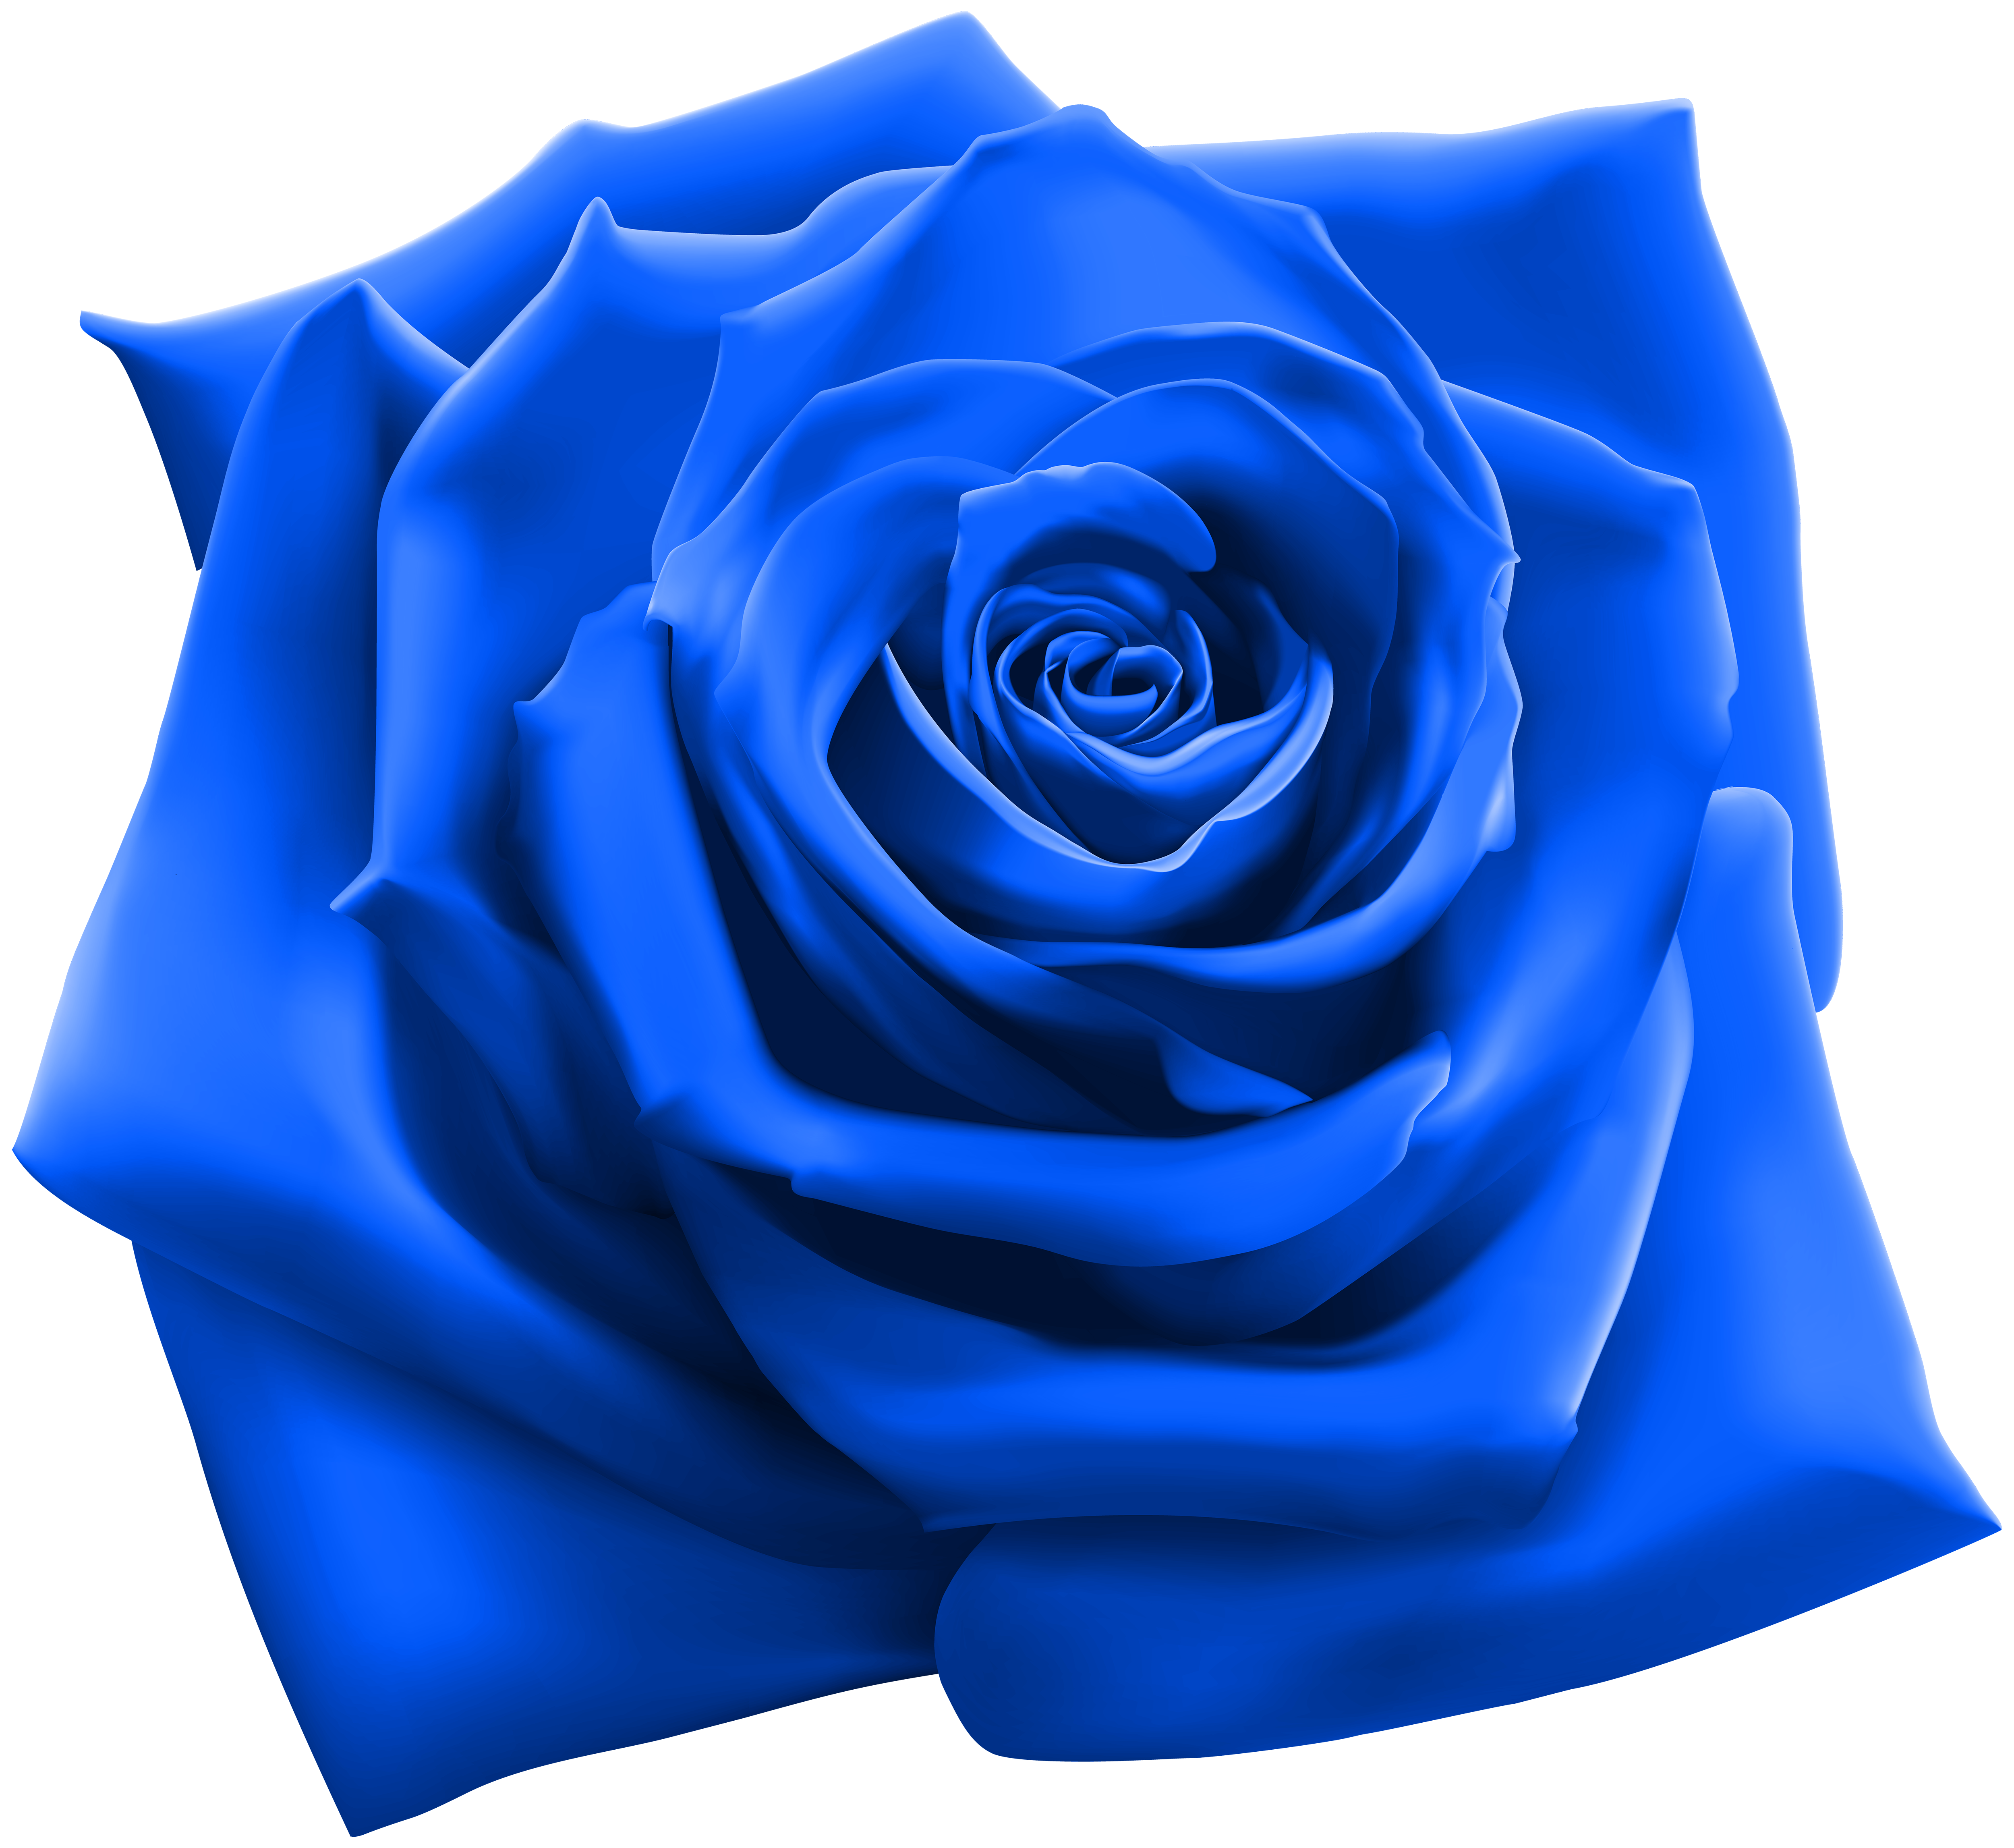 Blue Rose PNG Clipart Image.